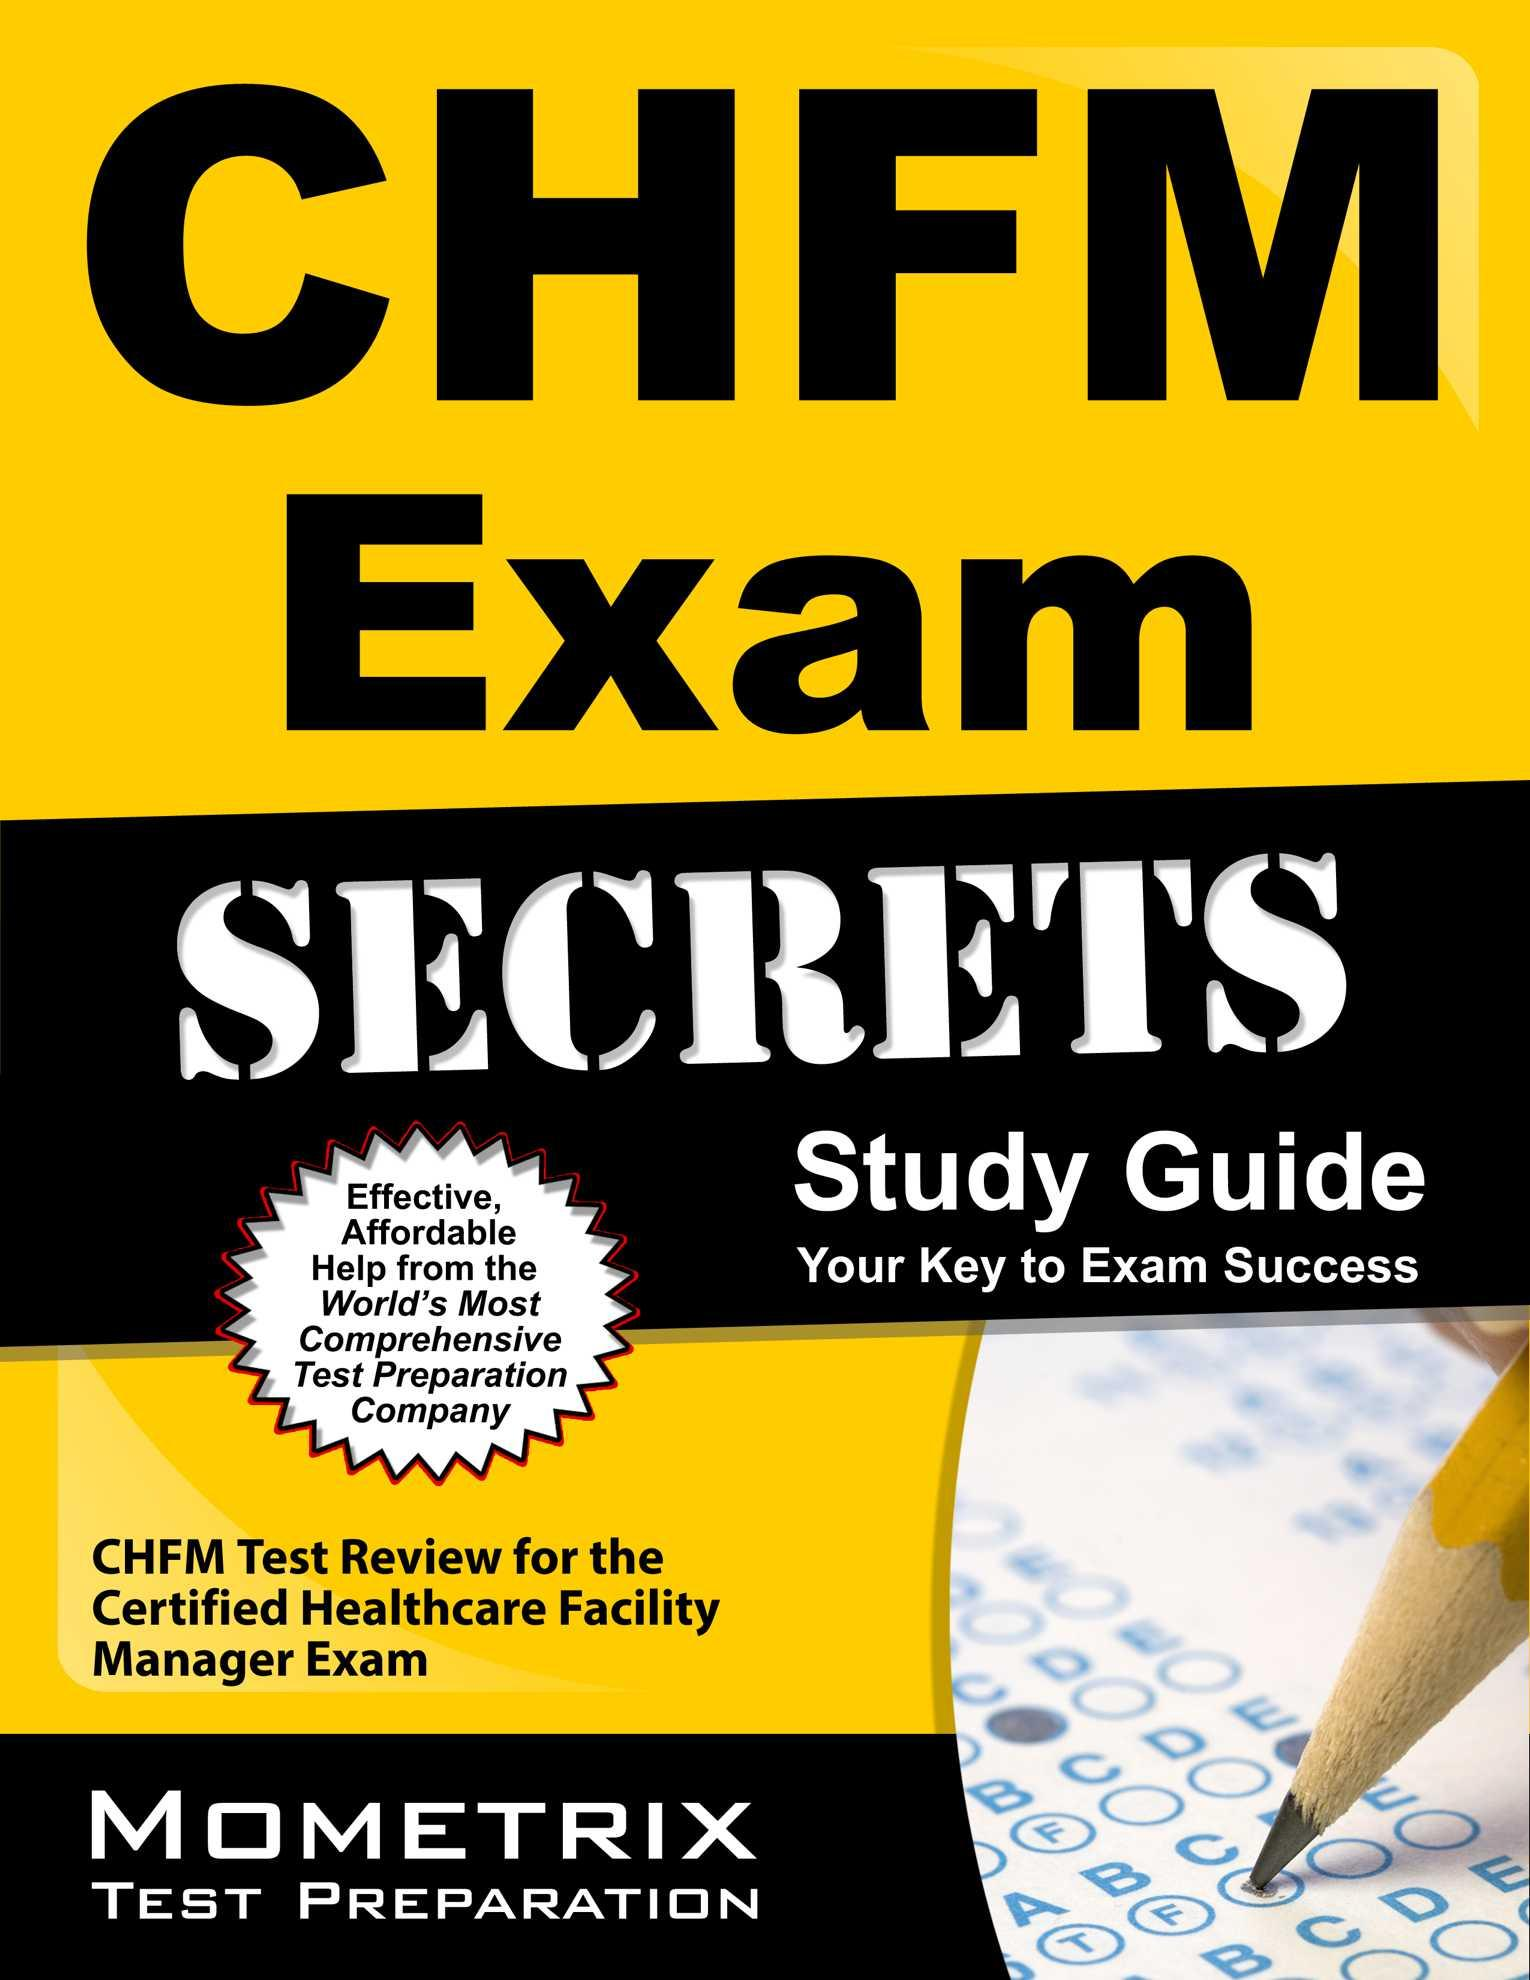 chfm exam secrets study guide chfm test review for the certified rh walmart com Nce Exam Study Guide Exam Study Guide Brady Michael Morton